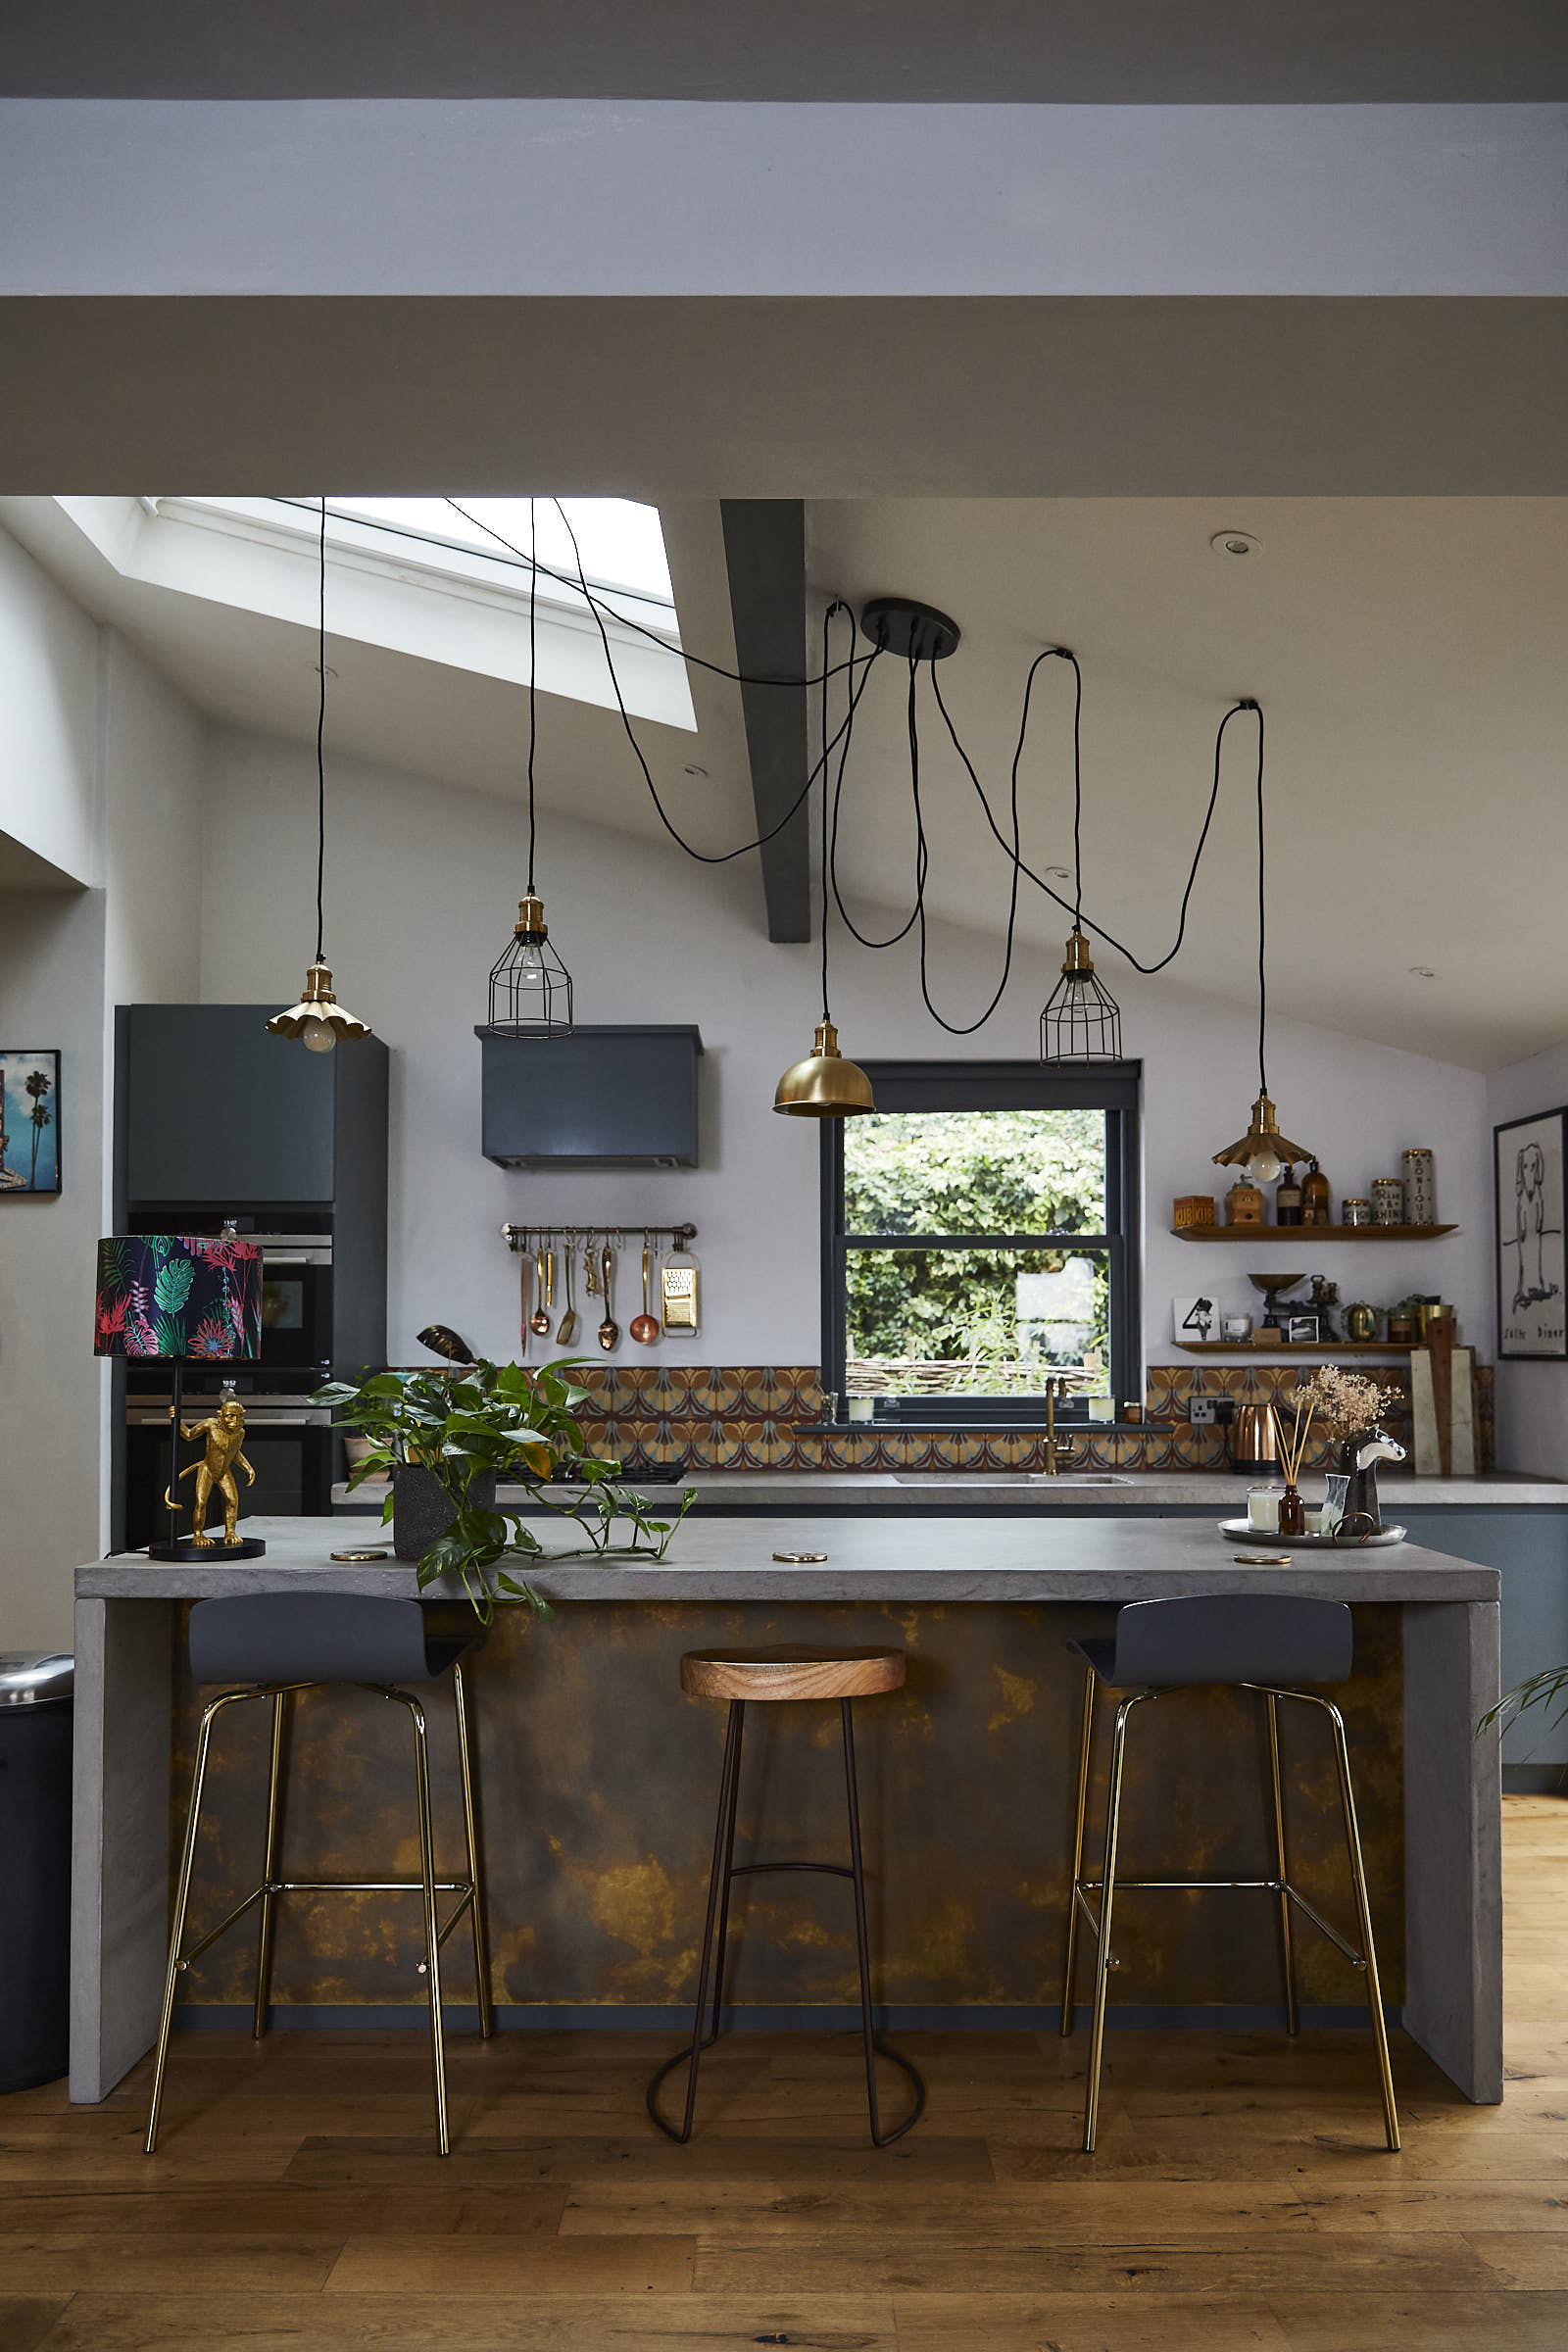 Stools under bespoke kitchen island made from concrete and brass with pendant lights hanging from above